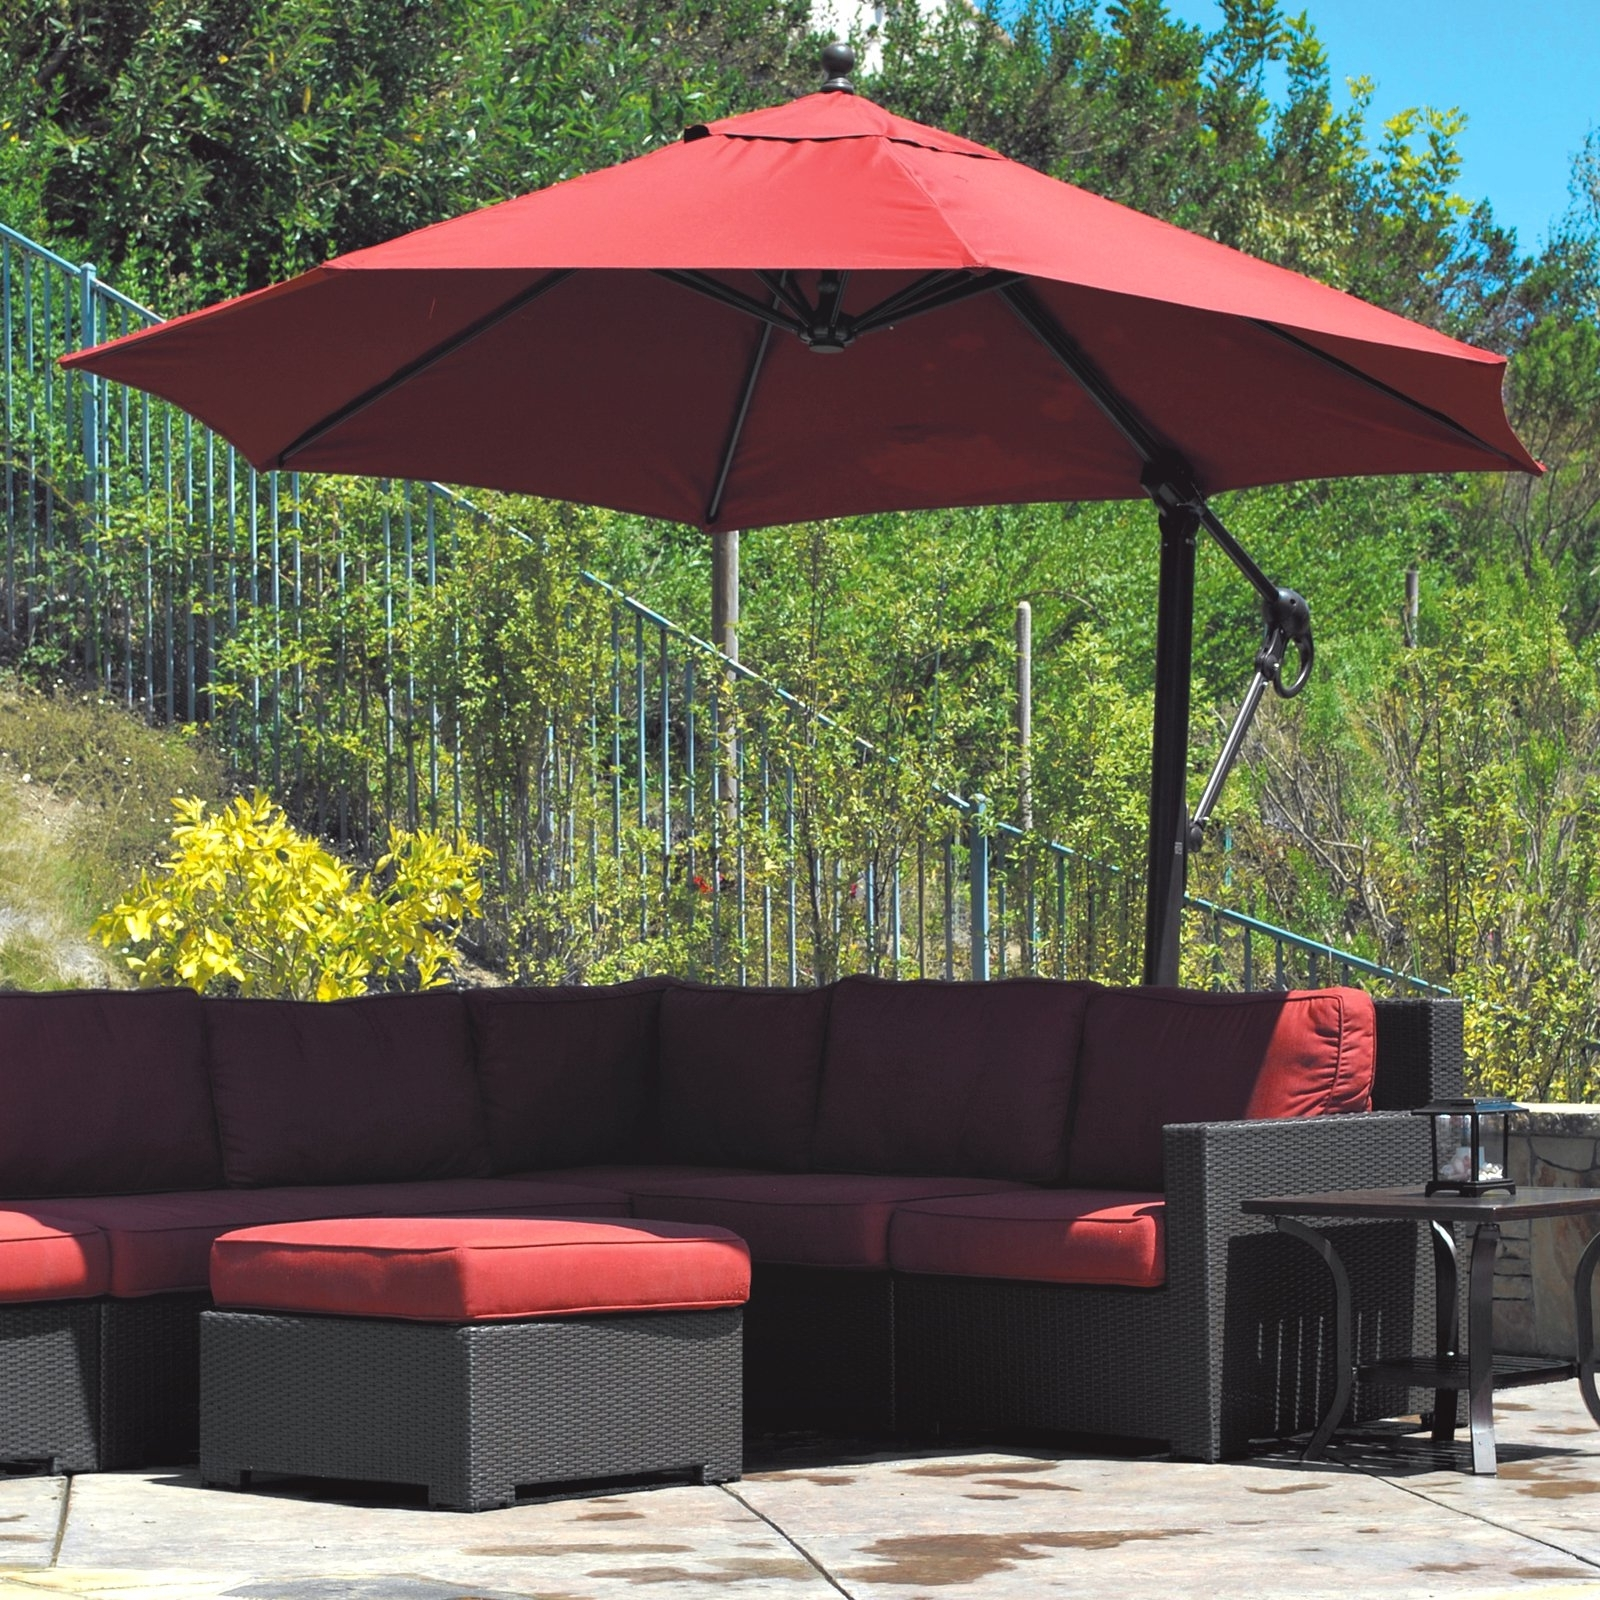 Most Recent Galtech Sunbrella Easy Tilt 11 Ft. Offset Umbrella With Wheeled Base With Regard To 11 Ft (View 5 of 20)